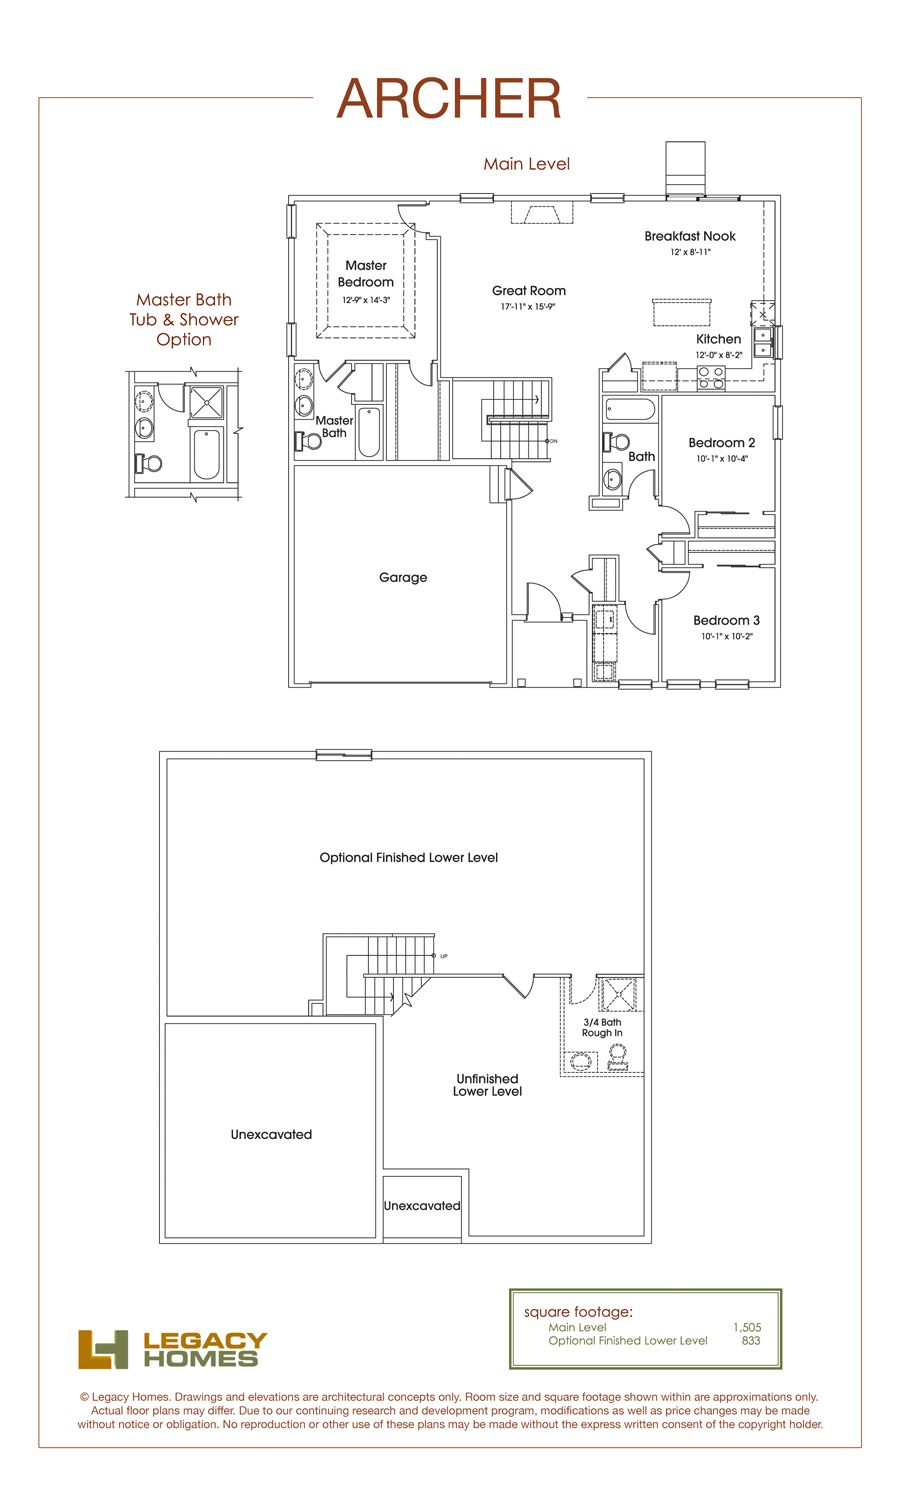 Archer Floor Plan   Legacy Homes   Omaha and Lincoln   Floorplans ...